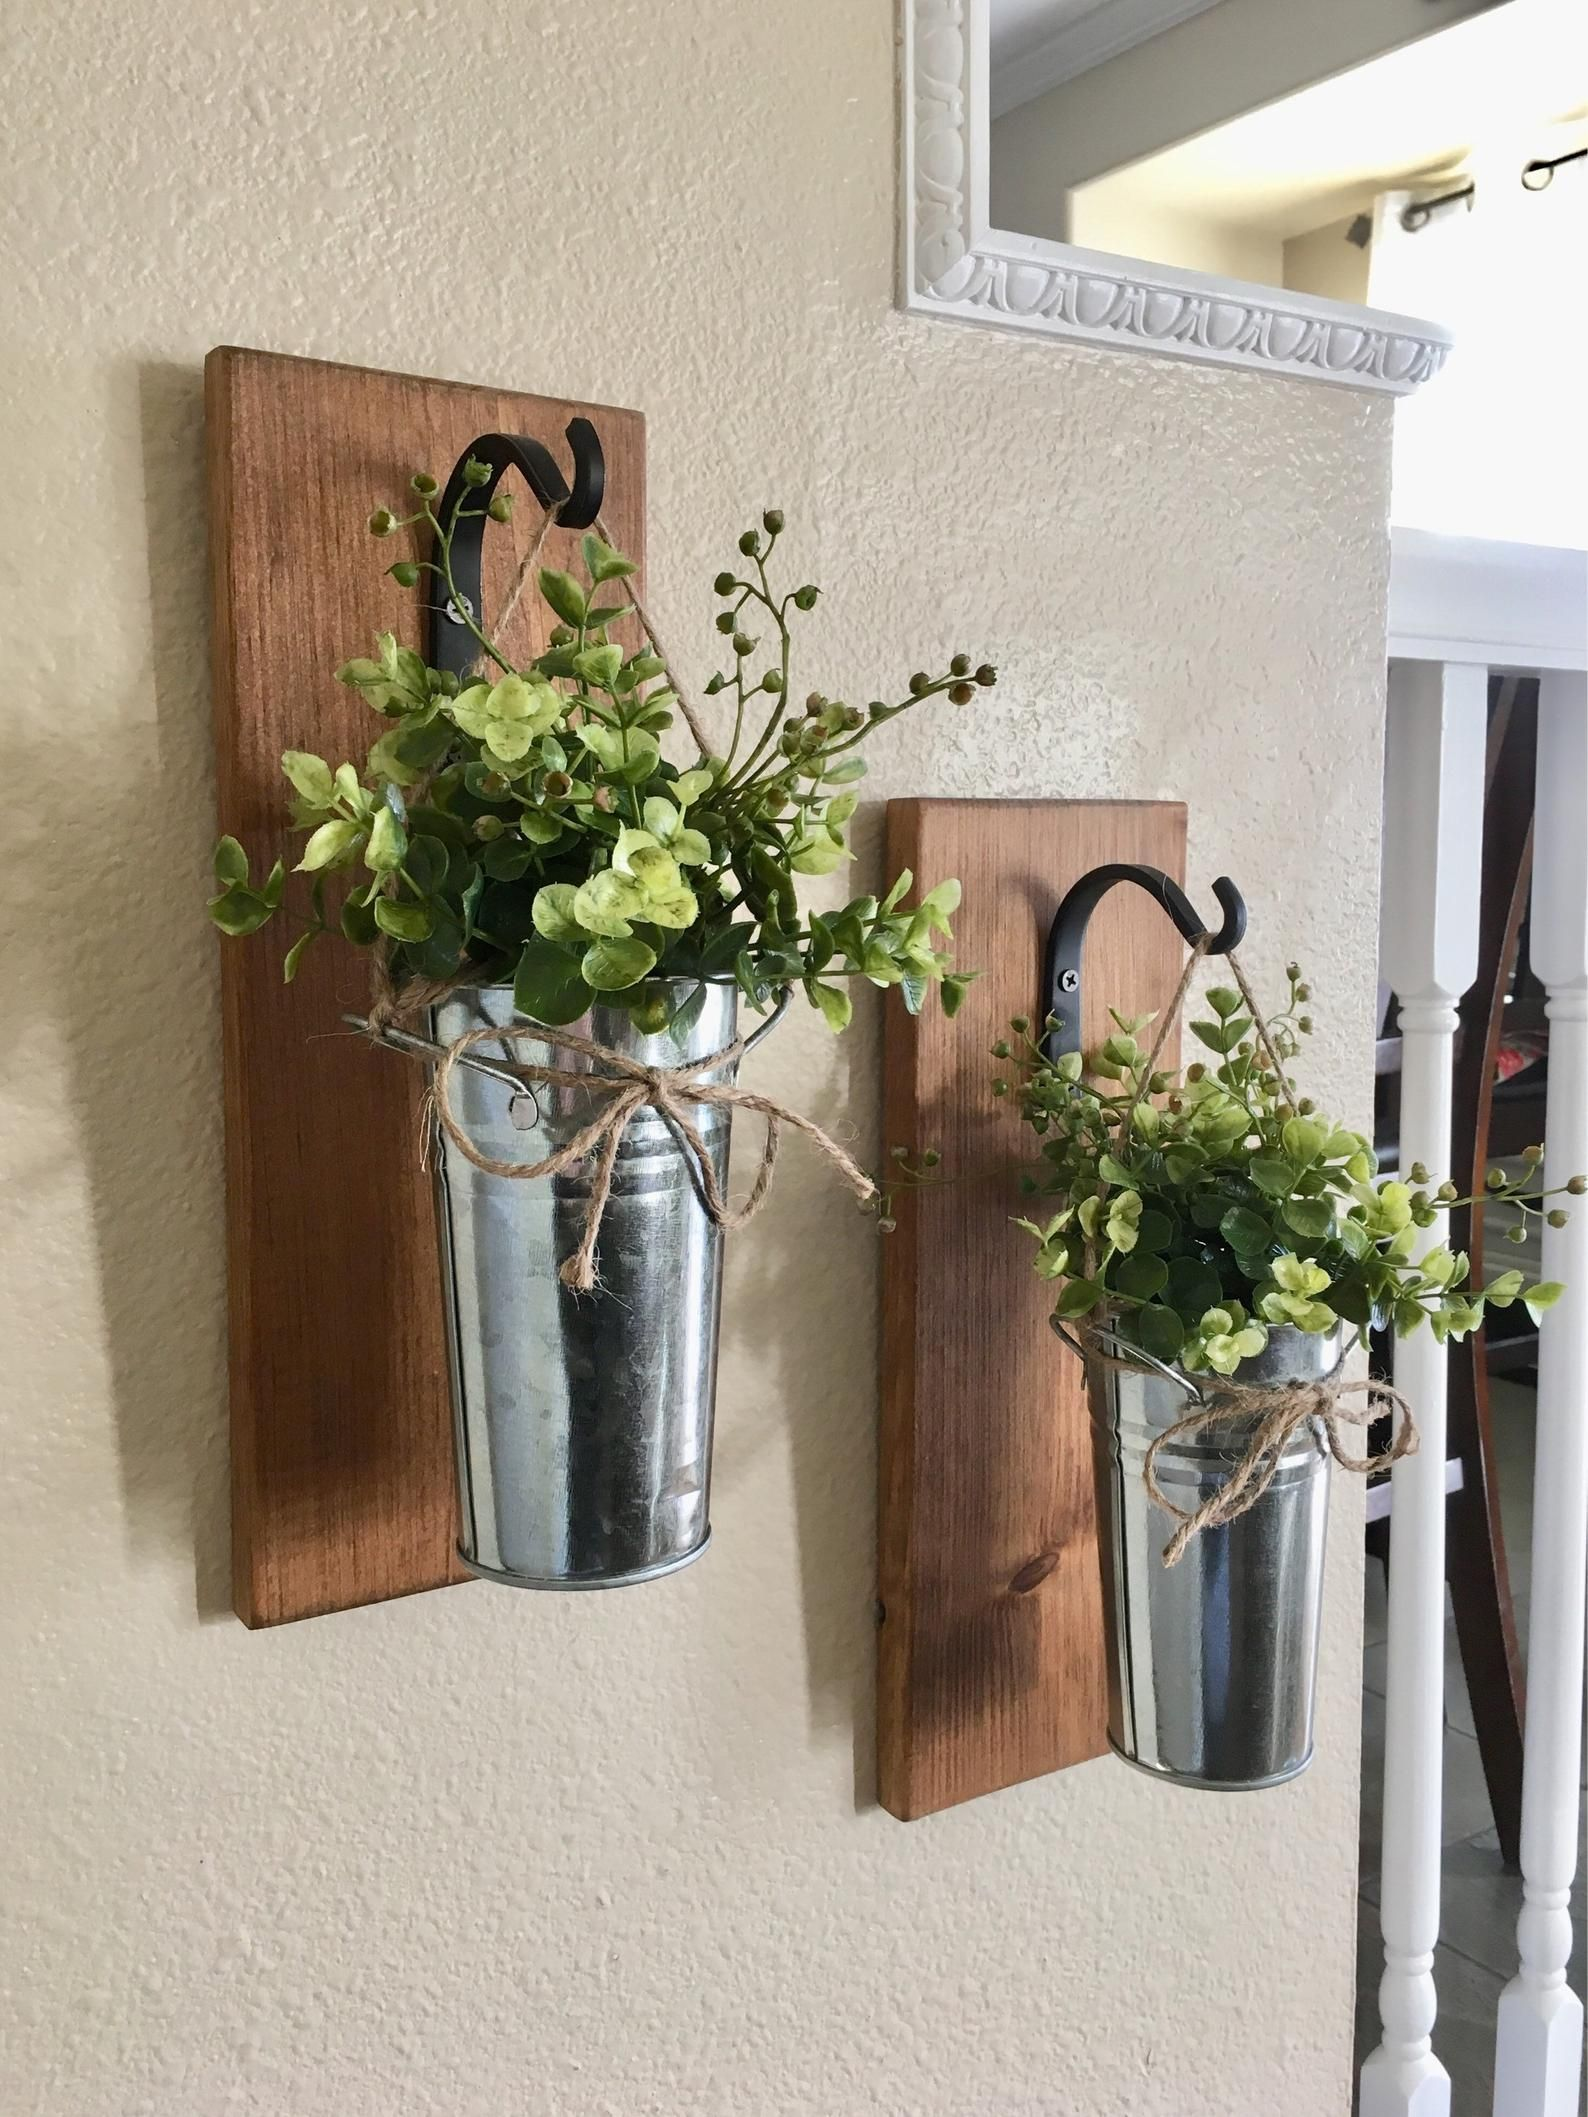 Home Decor,Hanging Planter with Greenery or Flowers ... on Wall Sconces For Greenery Decoration id=99493